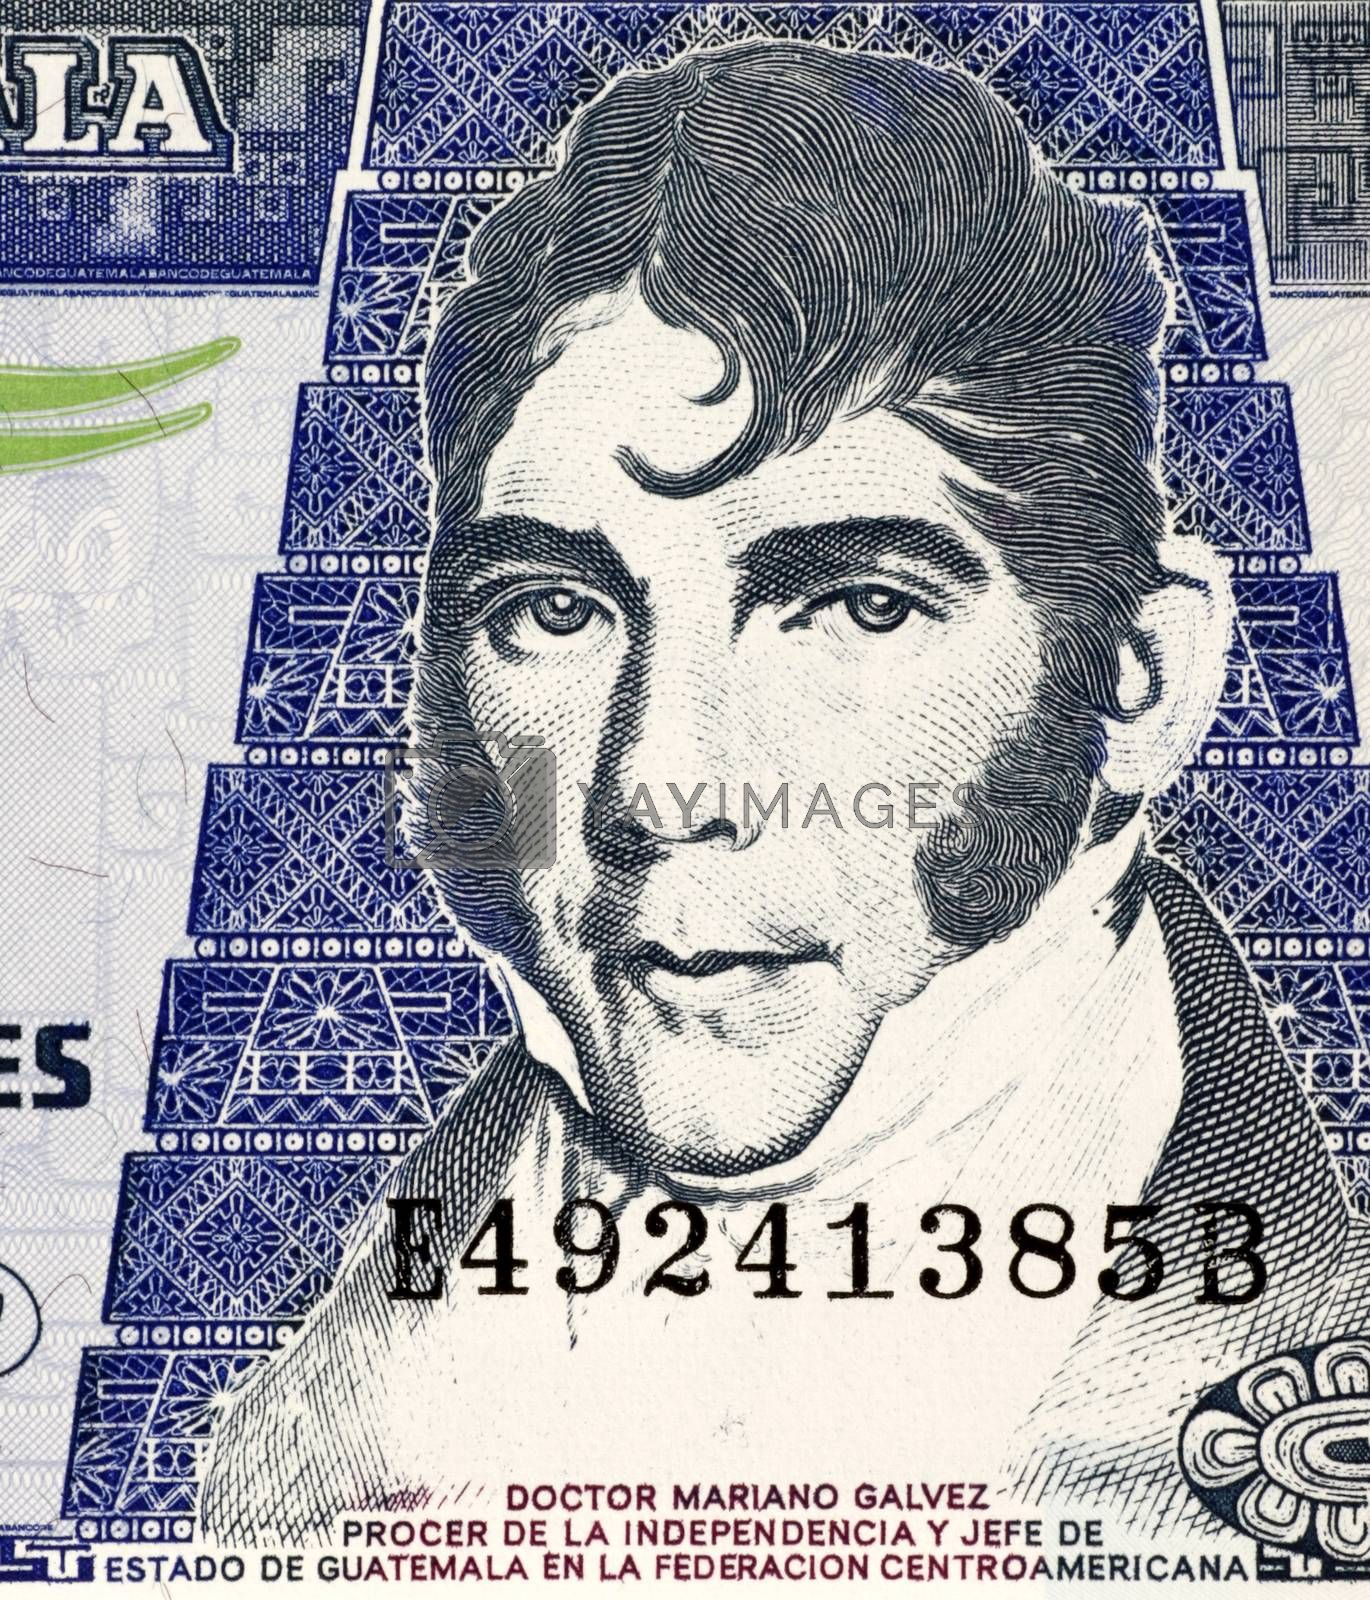 Mariano Galvez (1794-1862) on 20 Quetzales 2007 Banknote from Guatemala. Jurist and Liberal politician in Guatemala.